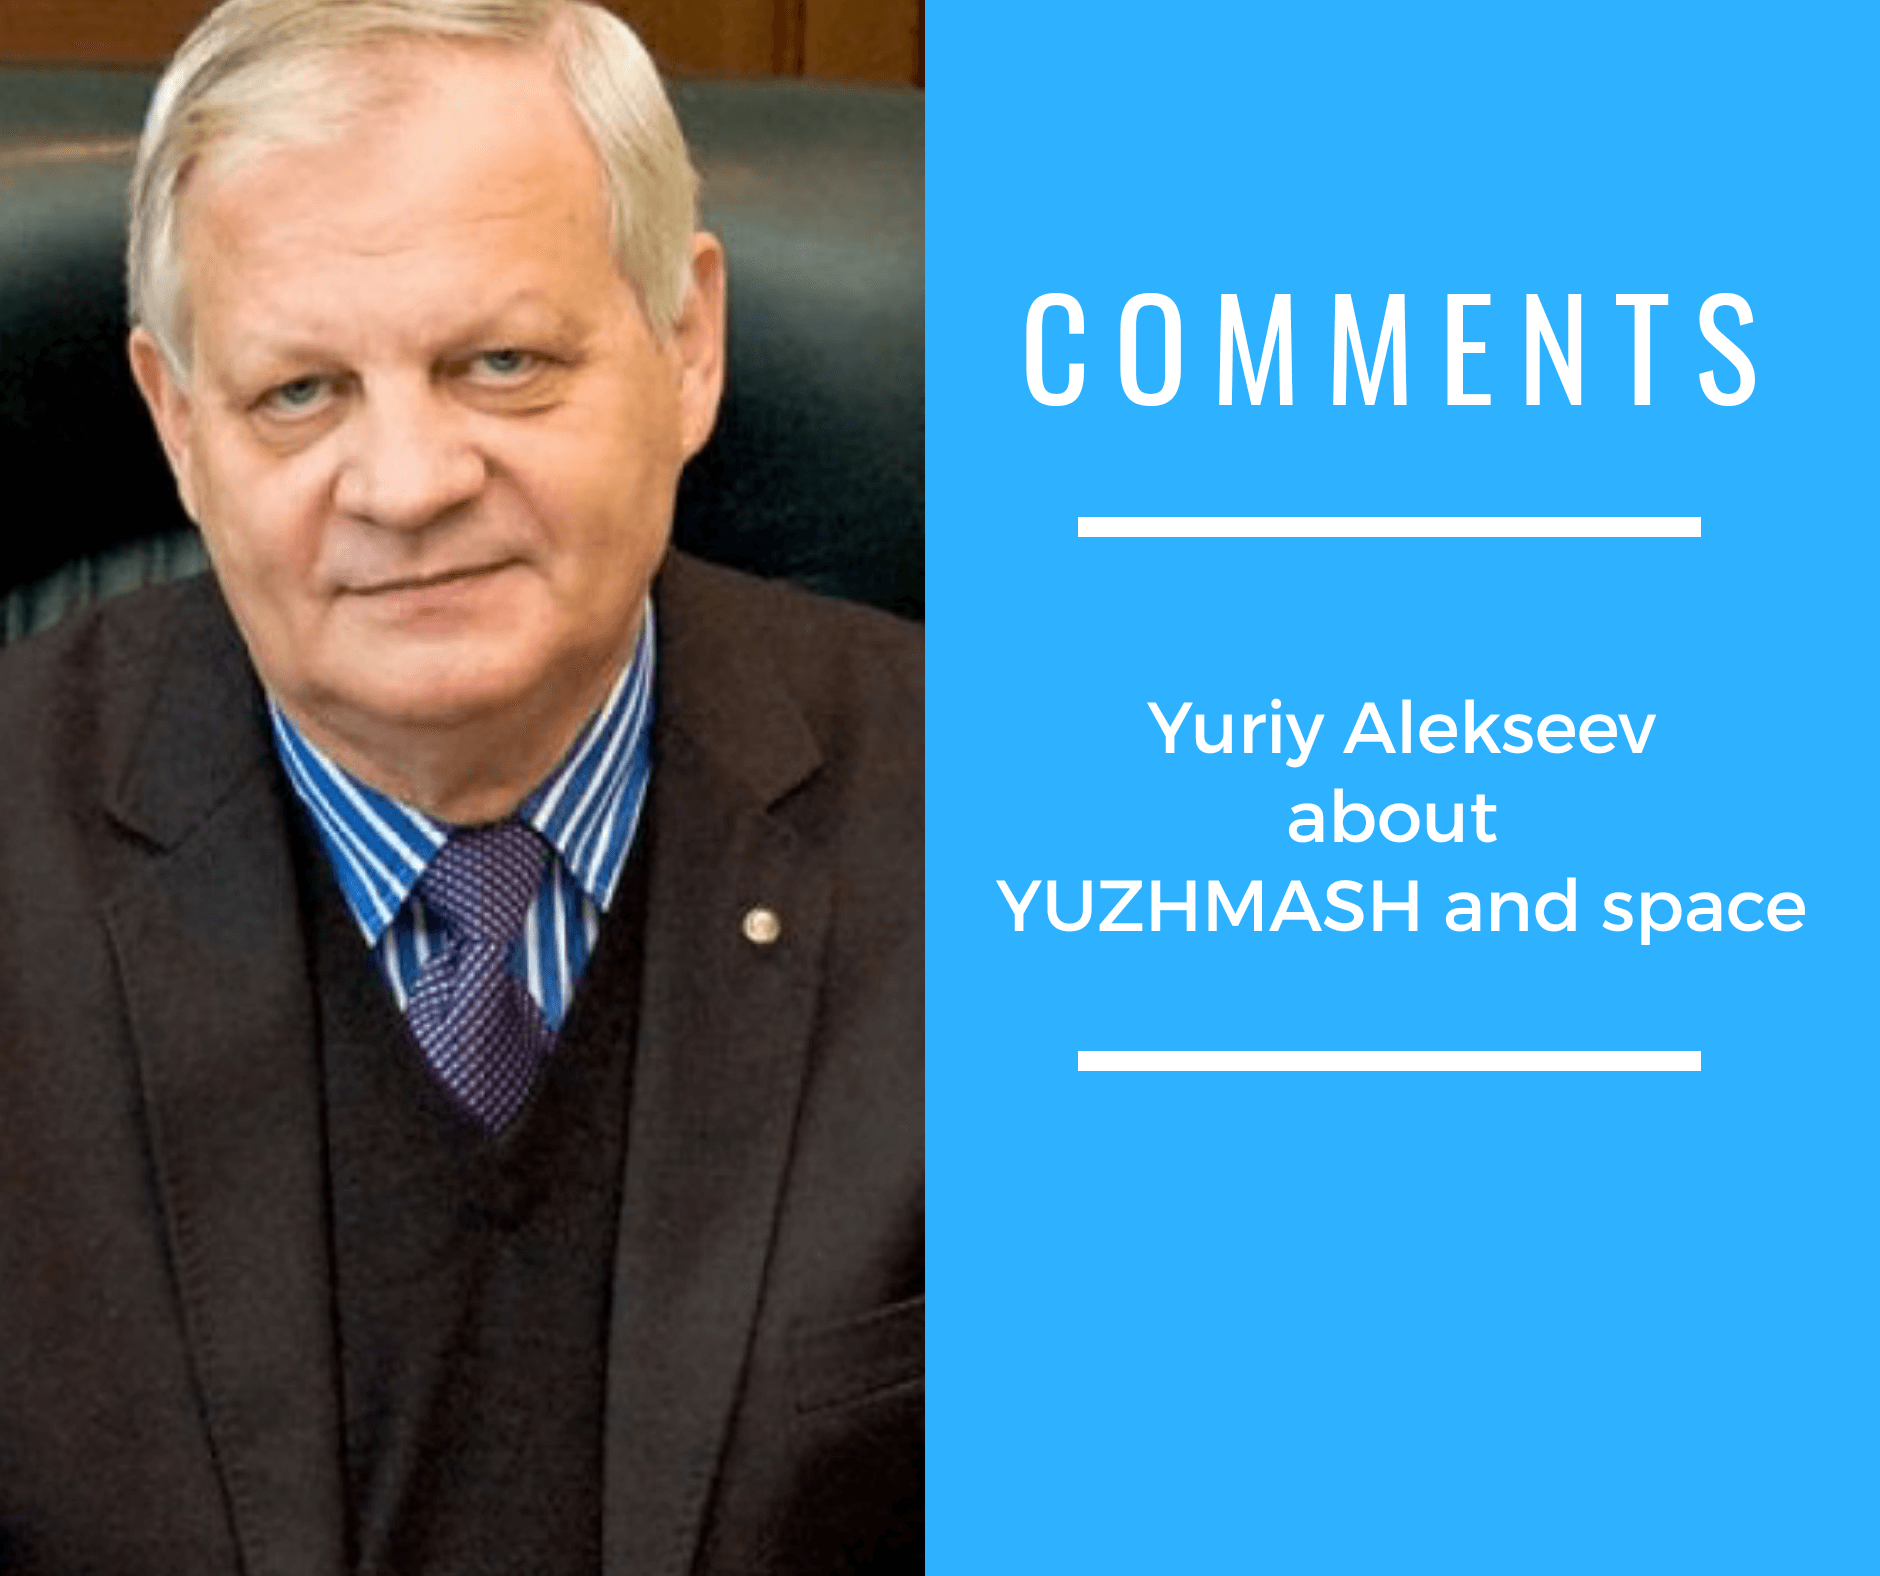 Yuriy Alekseev about YUZHMASH and Space